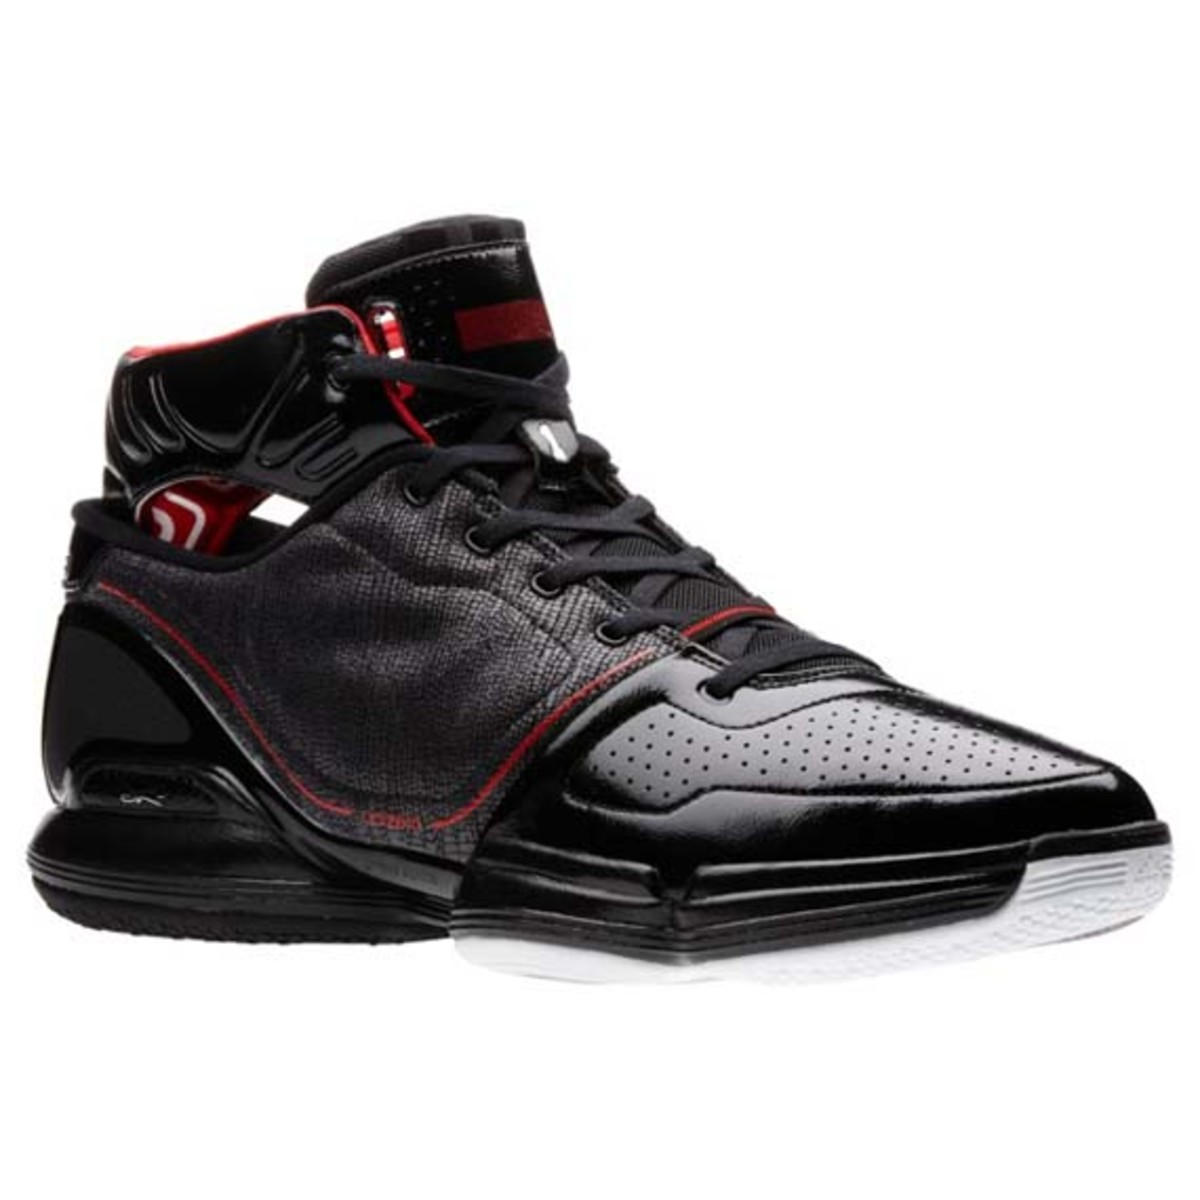 derrick rose shoes adizero 3 - photo #7